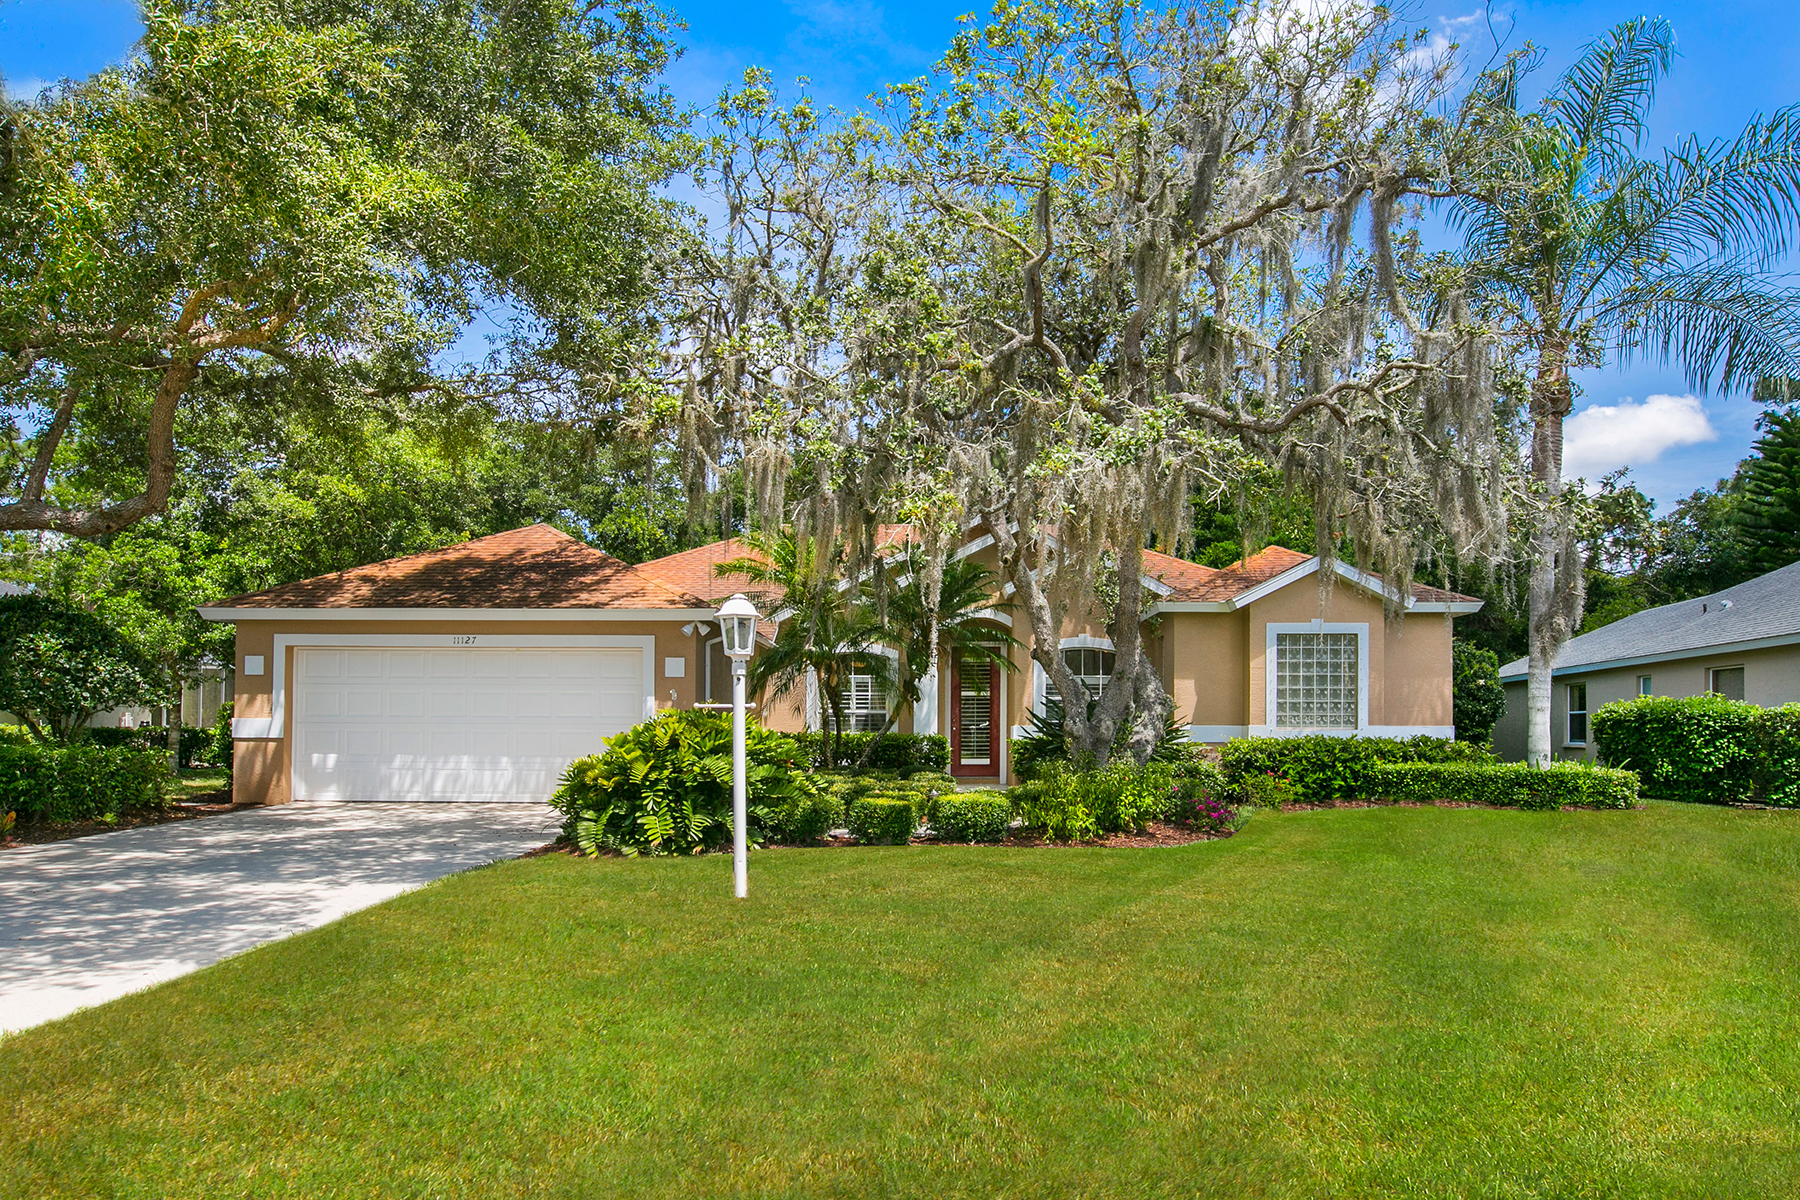 Single Family Home for Sale at SUMMERFIELD WOODS AND BLUFFS 11127 Pine Lilly Pl Lakewood Ranch, Florida, 34202 United States